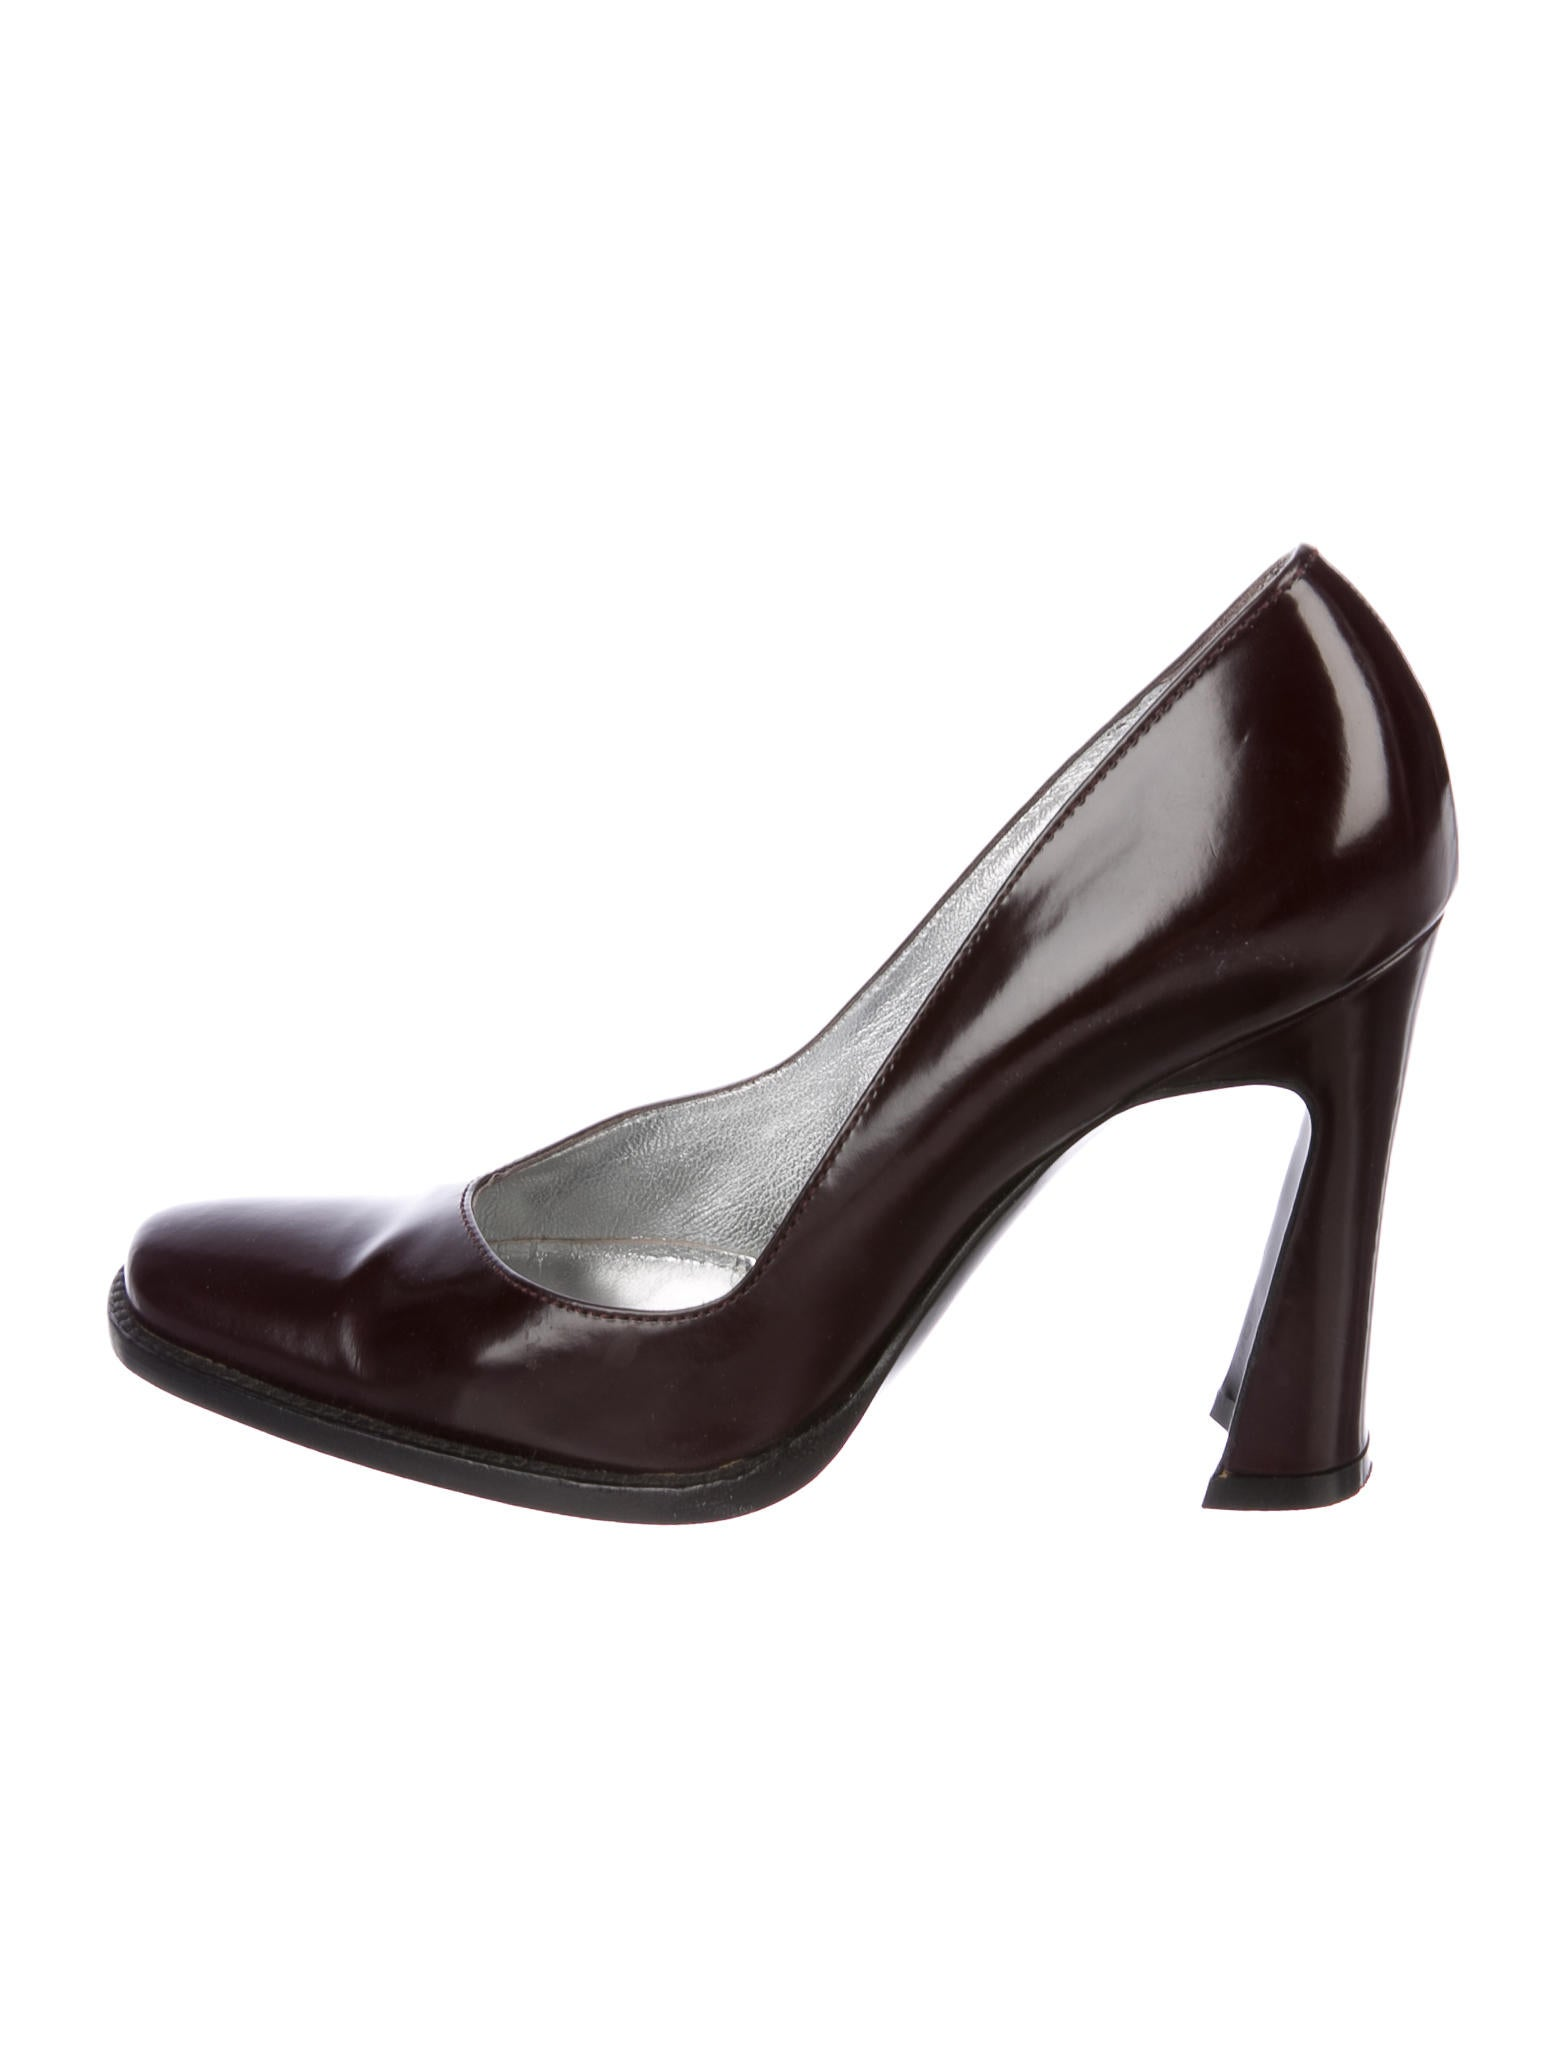 cheap sale with credit card cheap sast Dolce & Gabbana Leather Square-Toe Pumps supply cheap price cheap best store to get outlet perfect YGurcOVjy